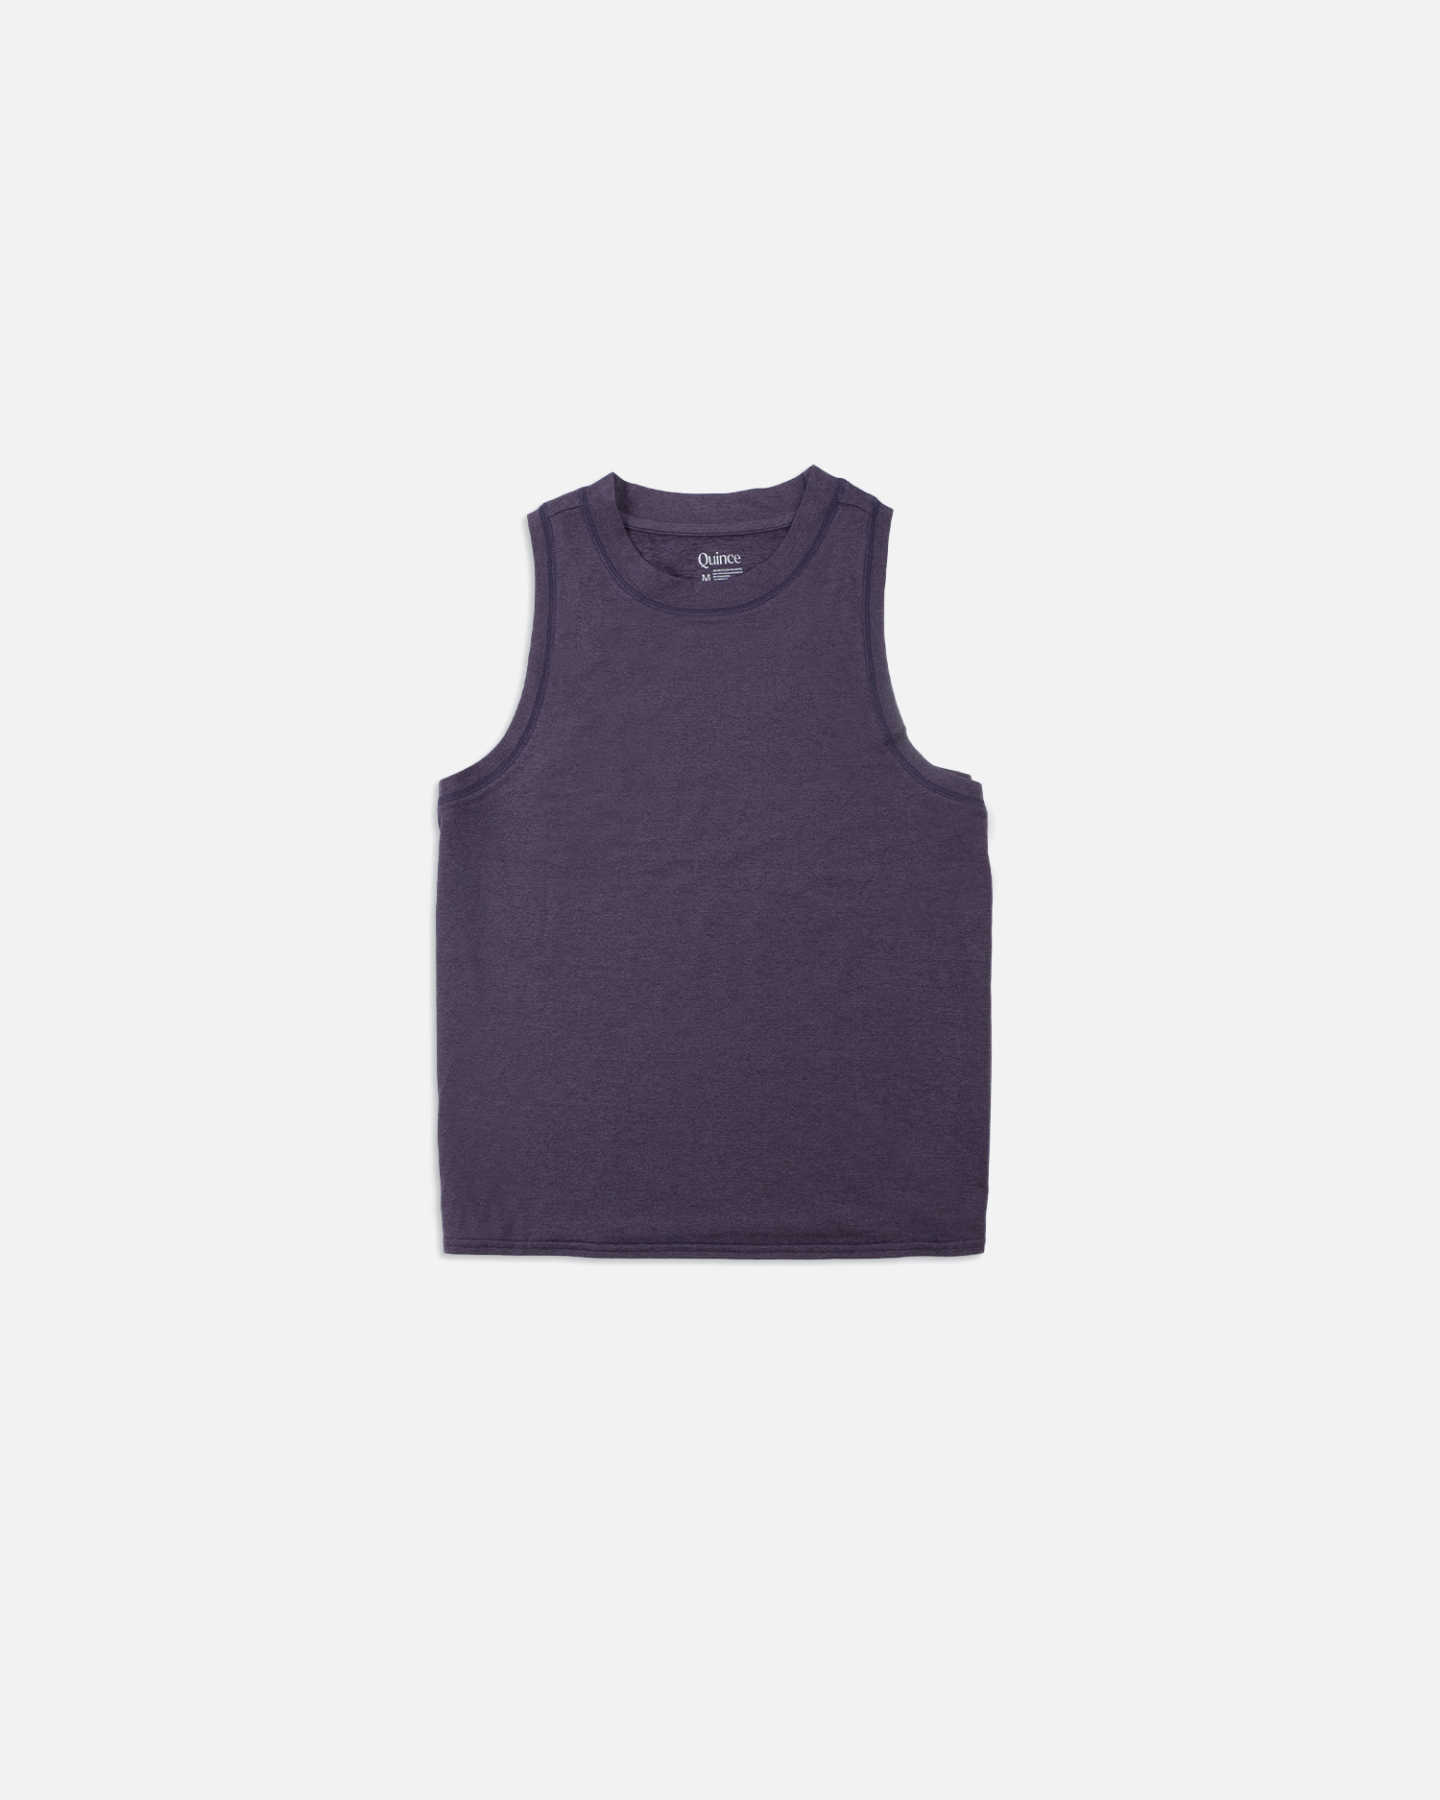 Pair With - Flowknit Ultra-Soft Performance Tank - Royal Purple